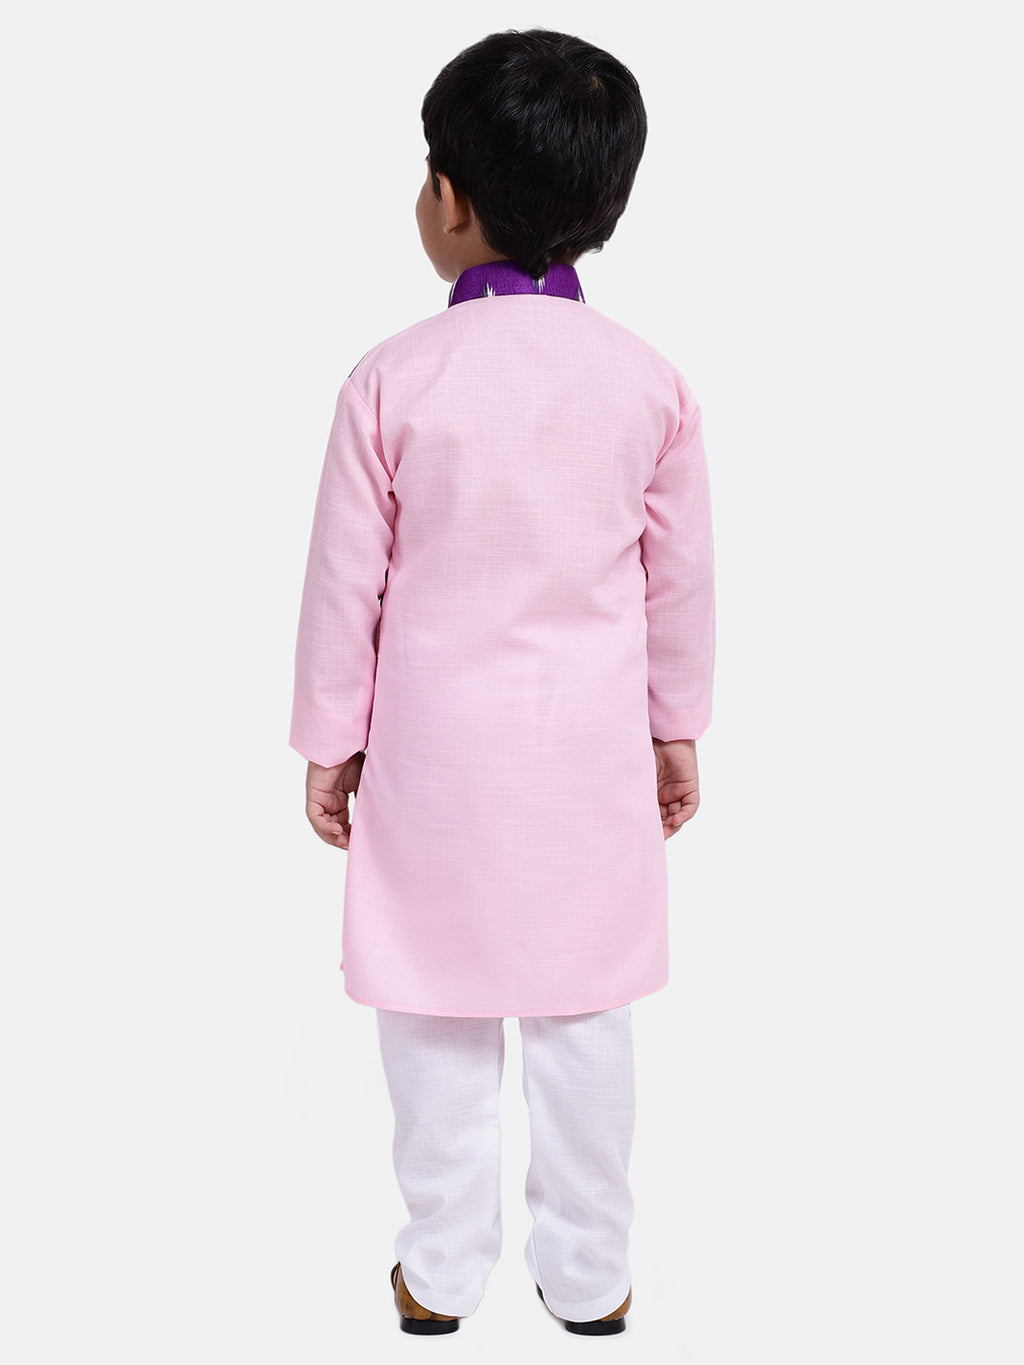 Attached Jacket Full Sleeve Kurta Pajama-Pink